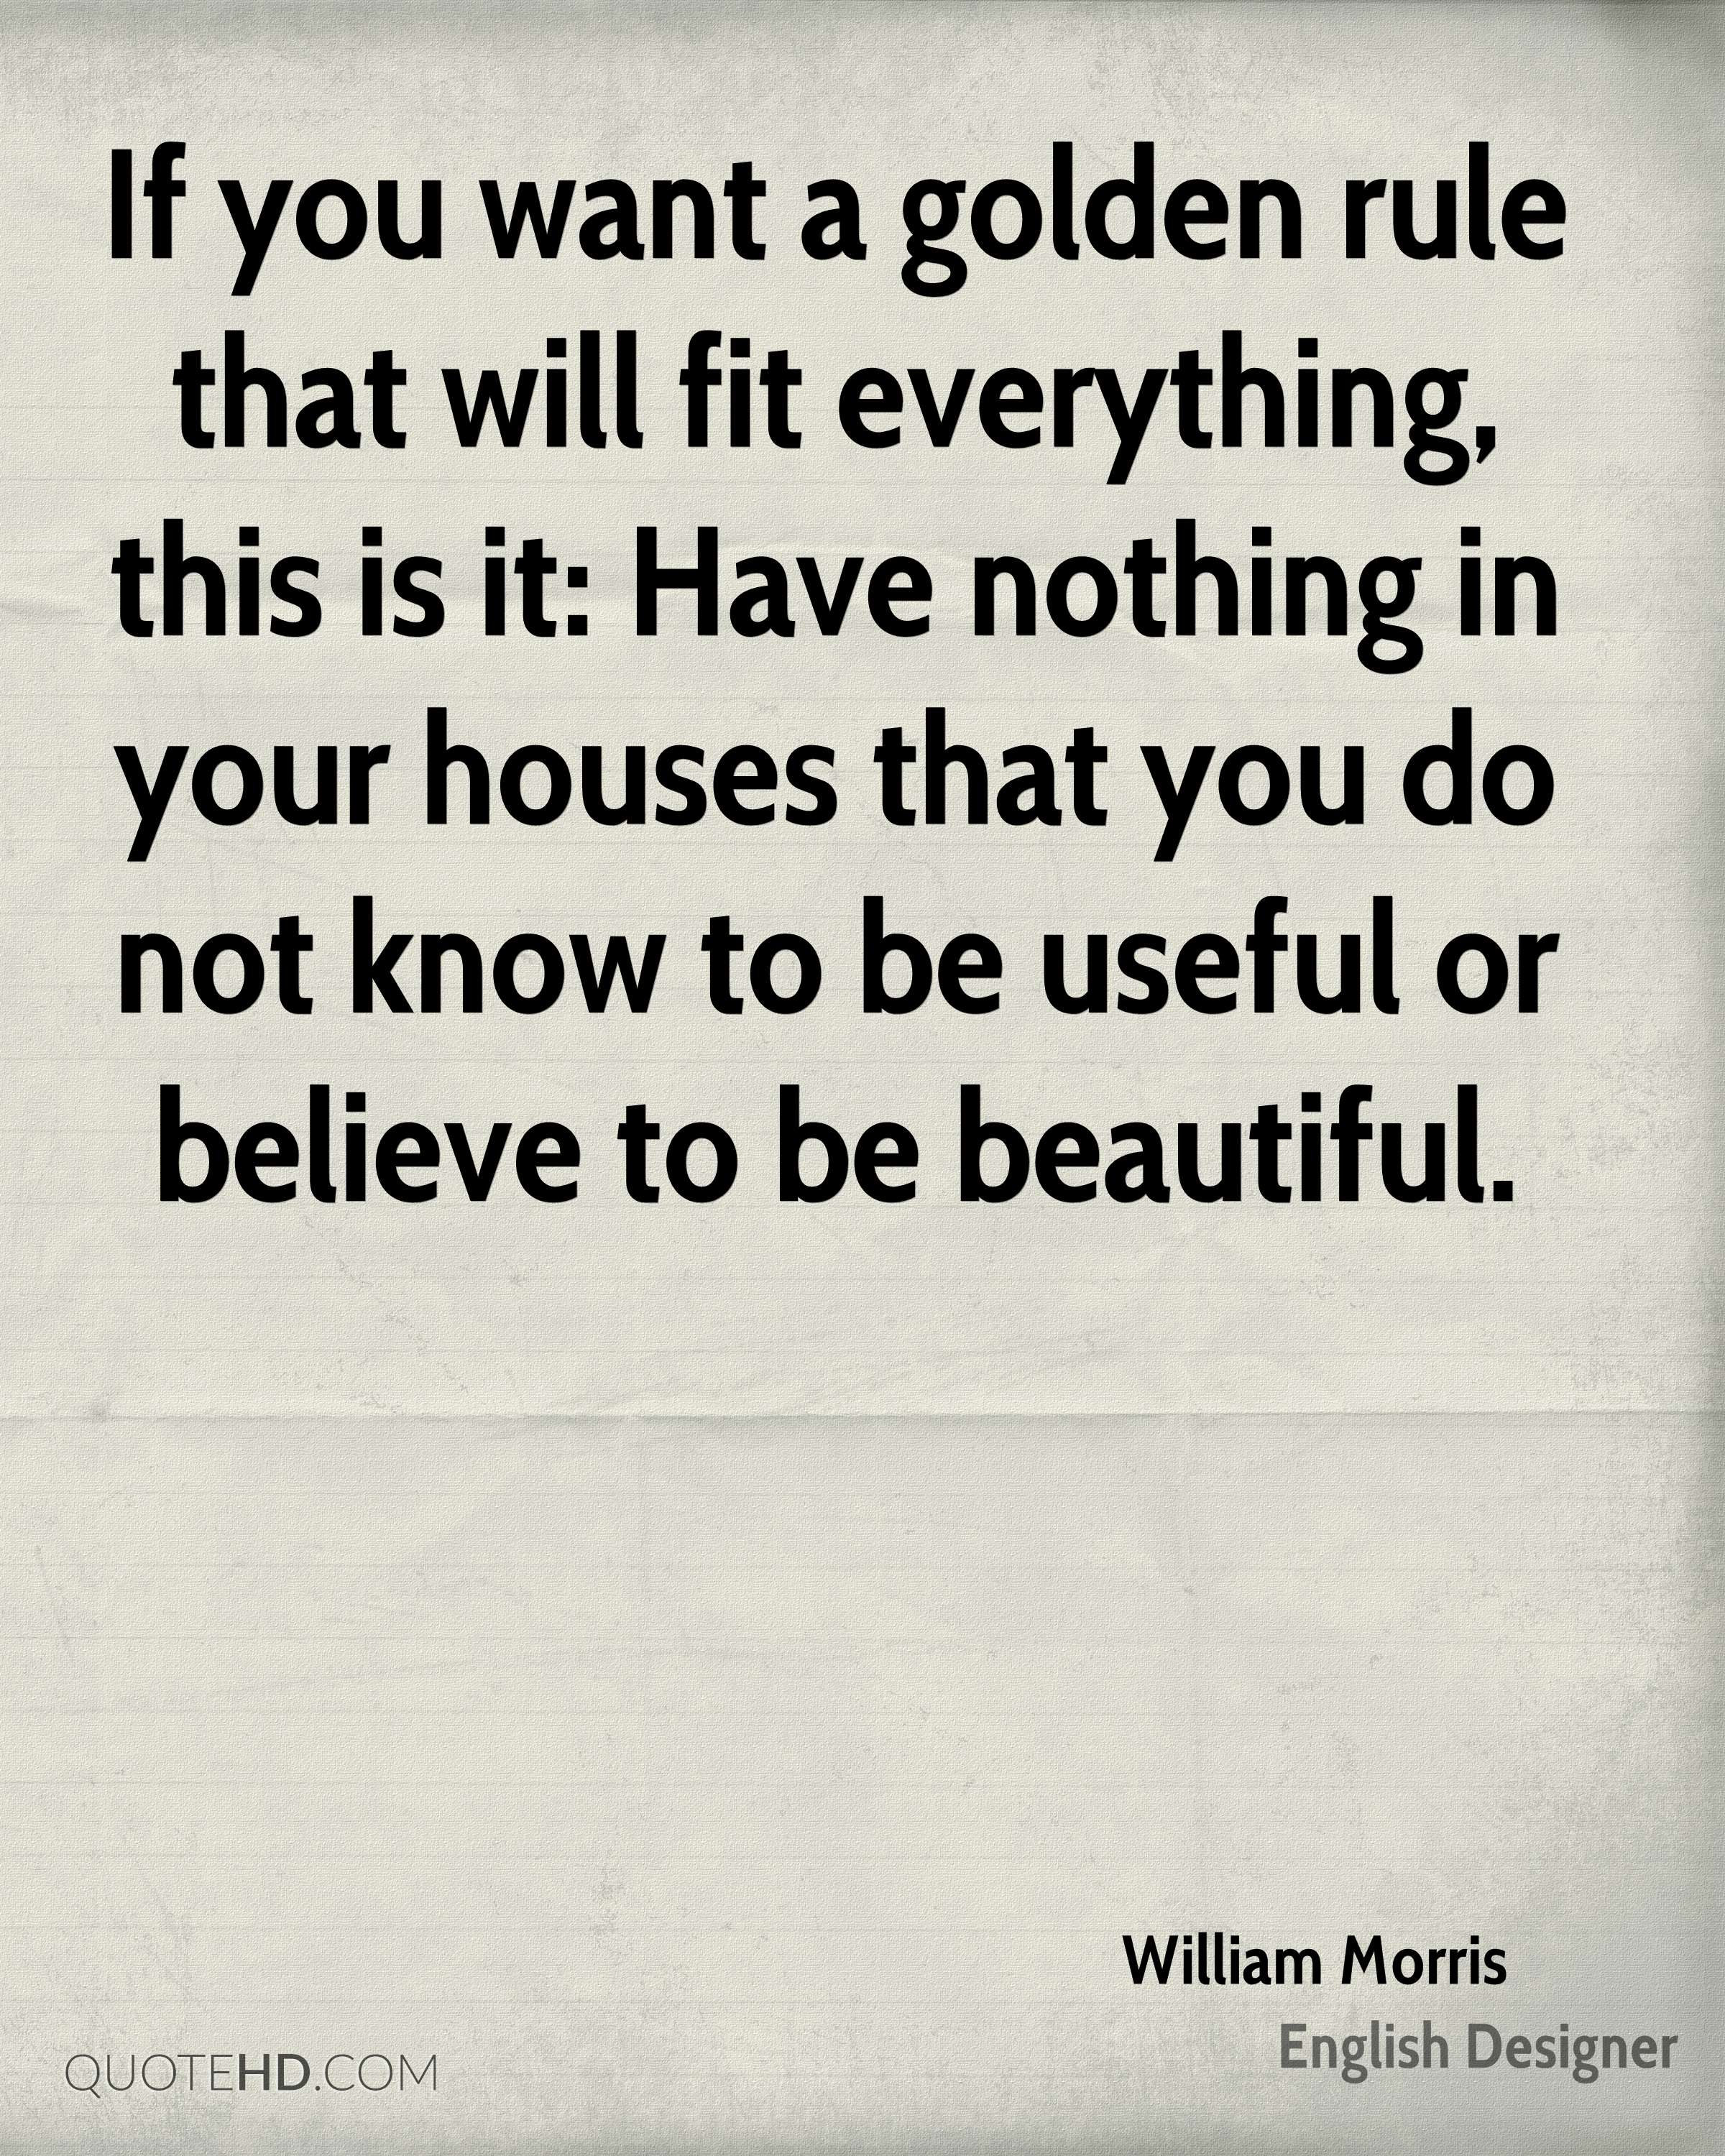 If you want a golden rule that will fit everything, this is it: Have nothing in your houses that you do not know to be useful or believe to be beautiful.